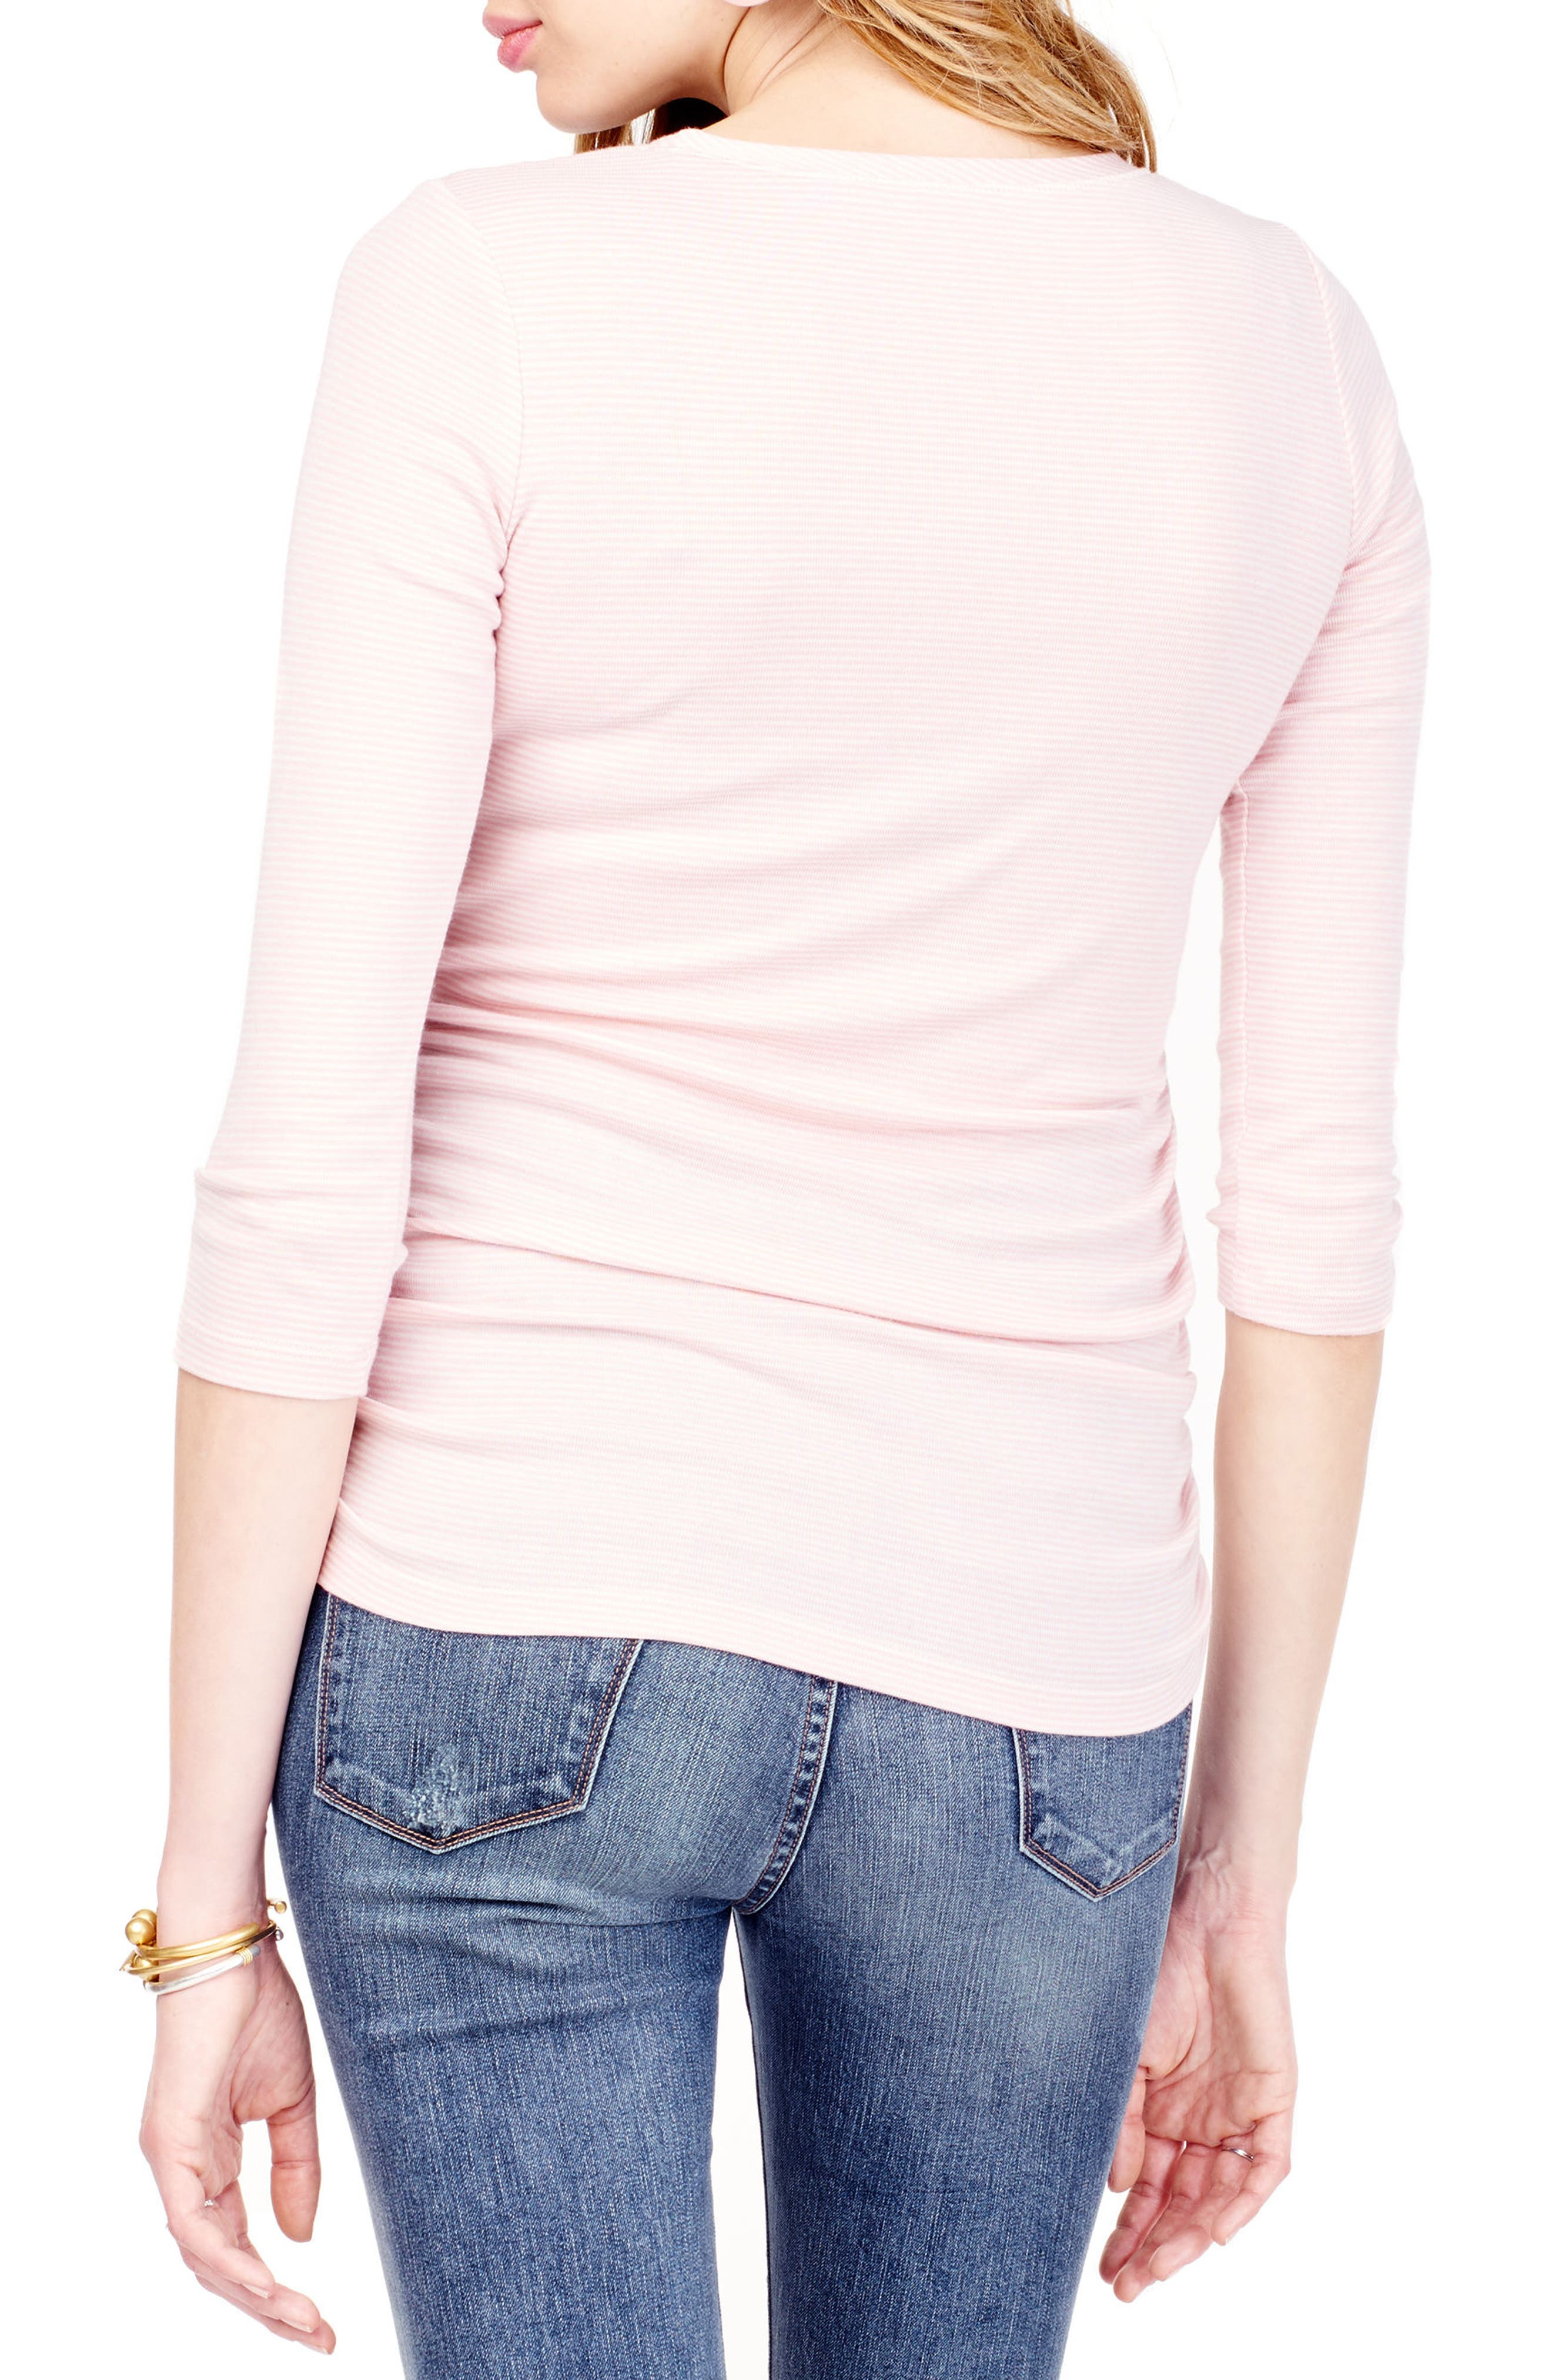 Ruched Maternity Top,                             Alternate thumbnail 2, color,                             BLUSH/ OATMEAL MICRO STRIPE